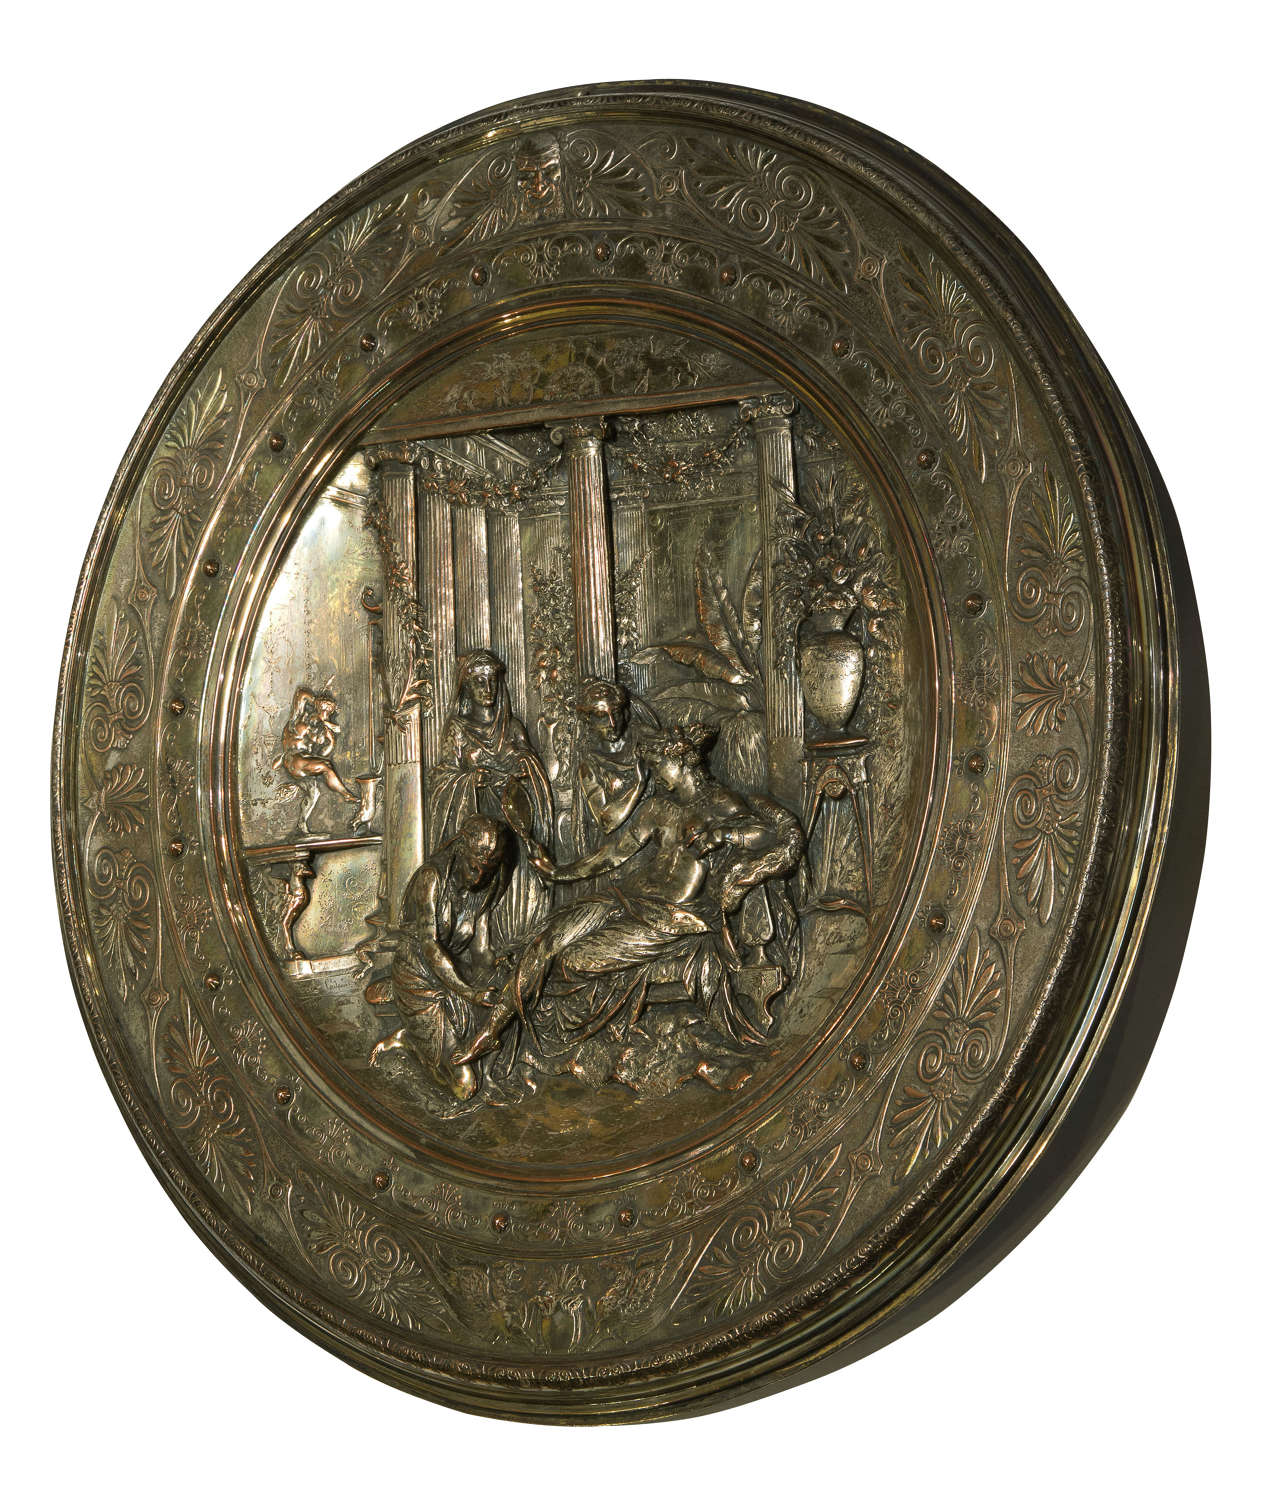 Silver plate on brass with decorative Elkington charger c1876